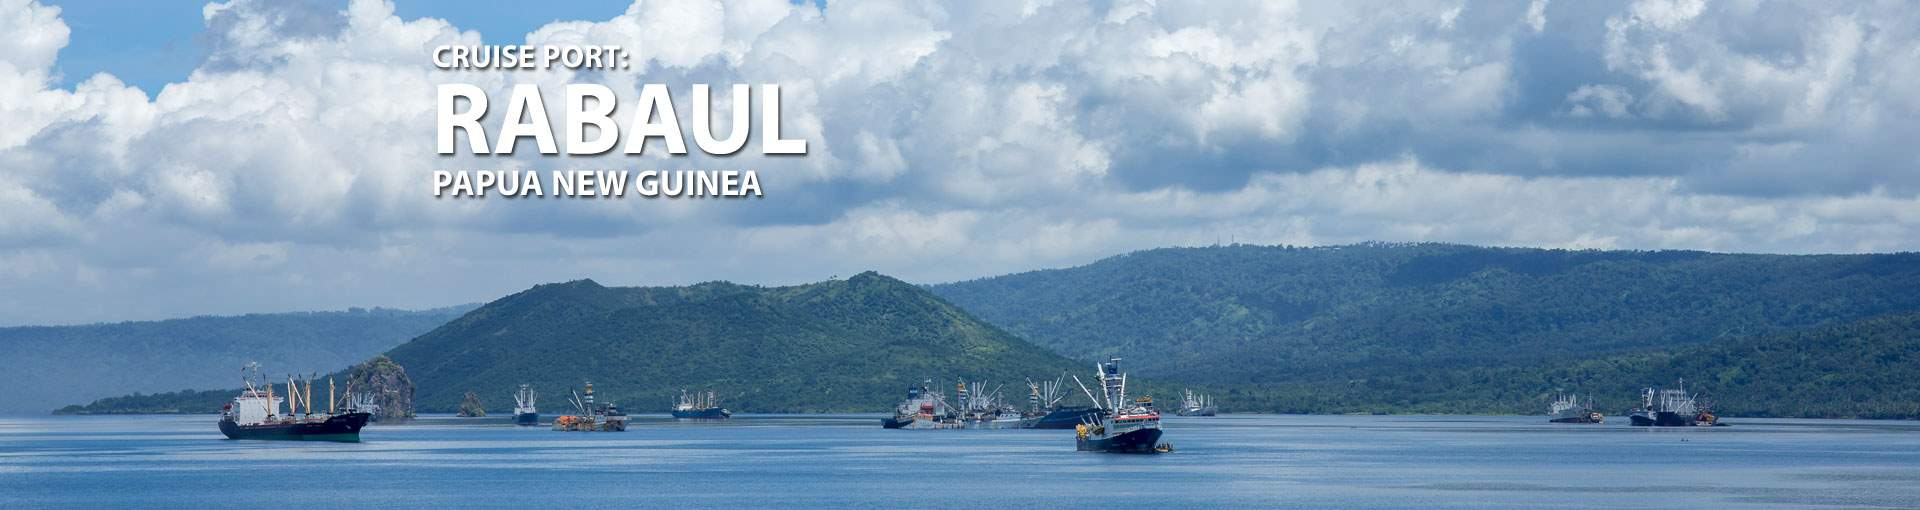 Cruises to Rabaul, Papua New Guinea